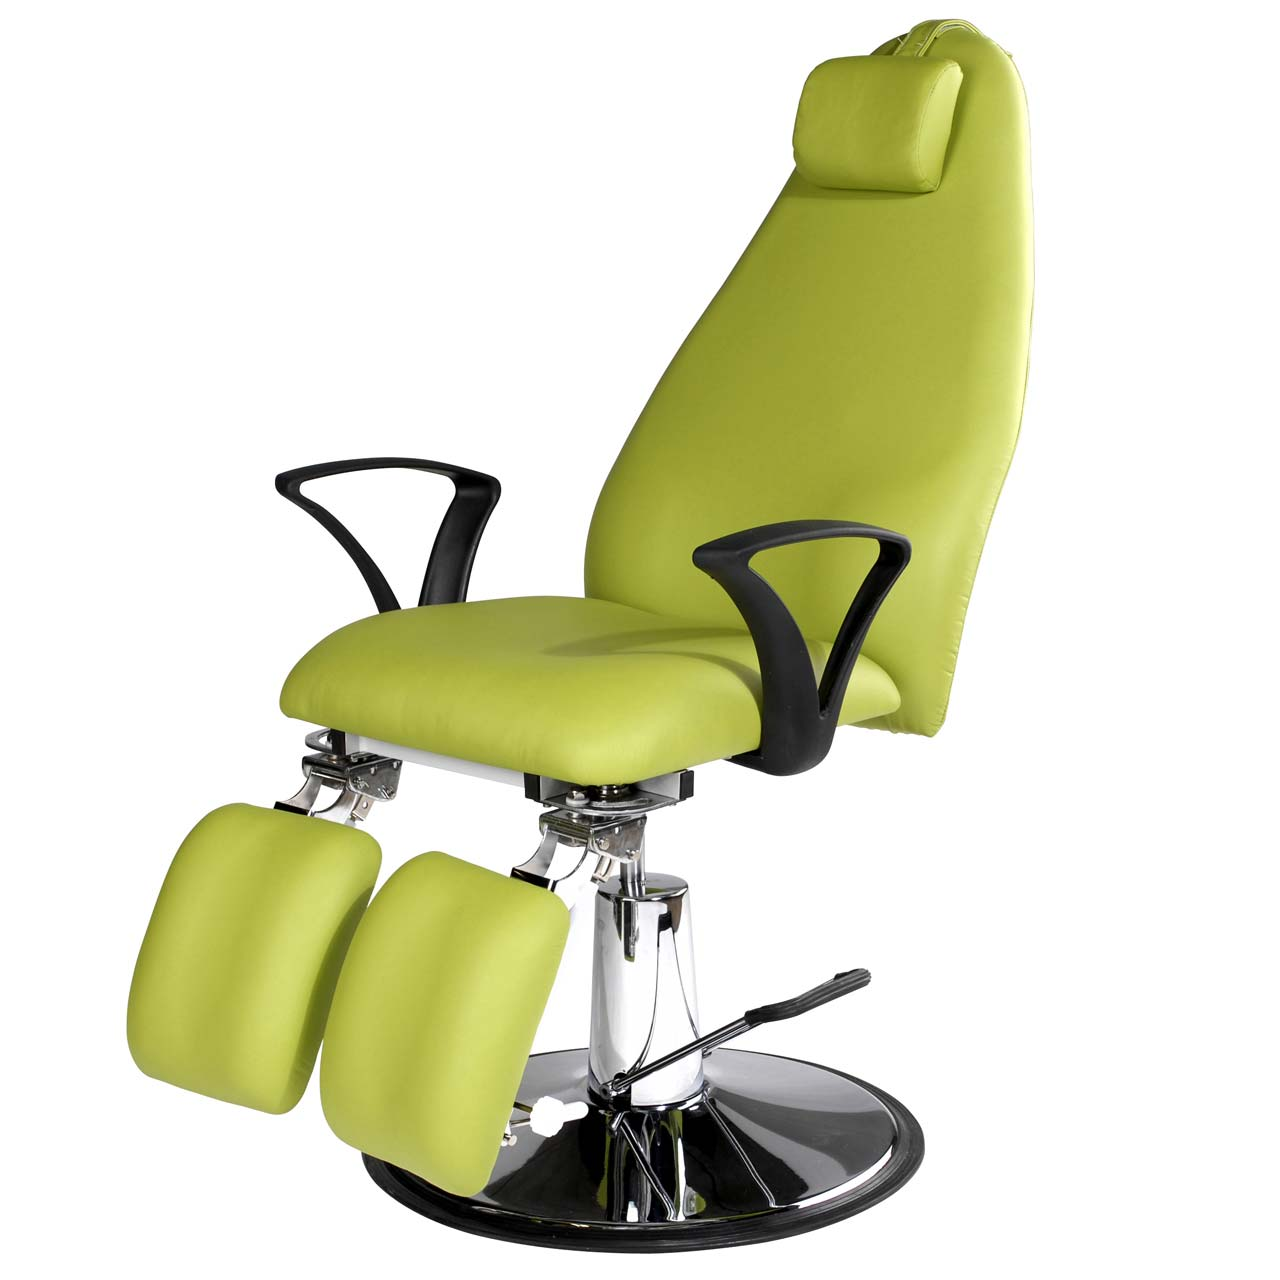 Hydraulic Lift Functions : Eurostyle beauty chair with hydraulic lift multi